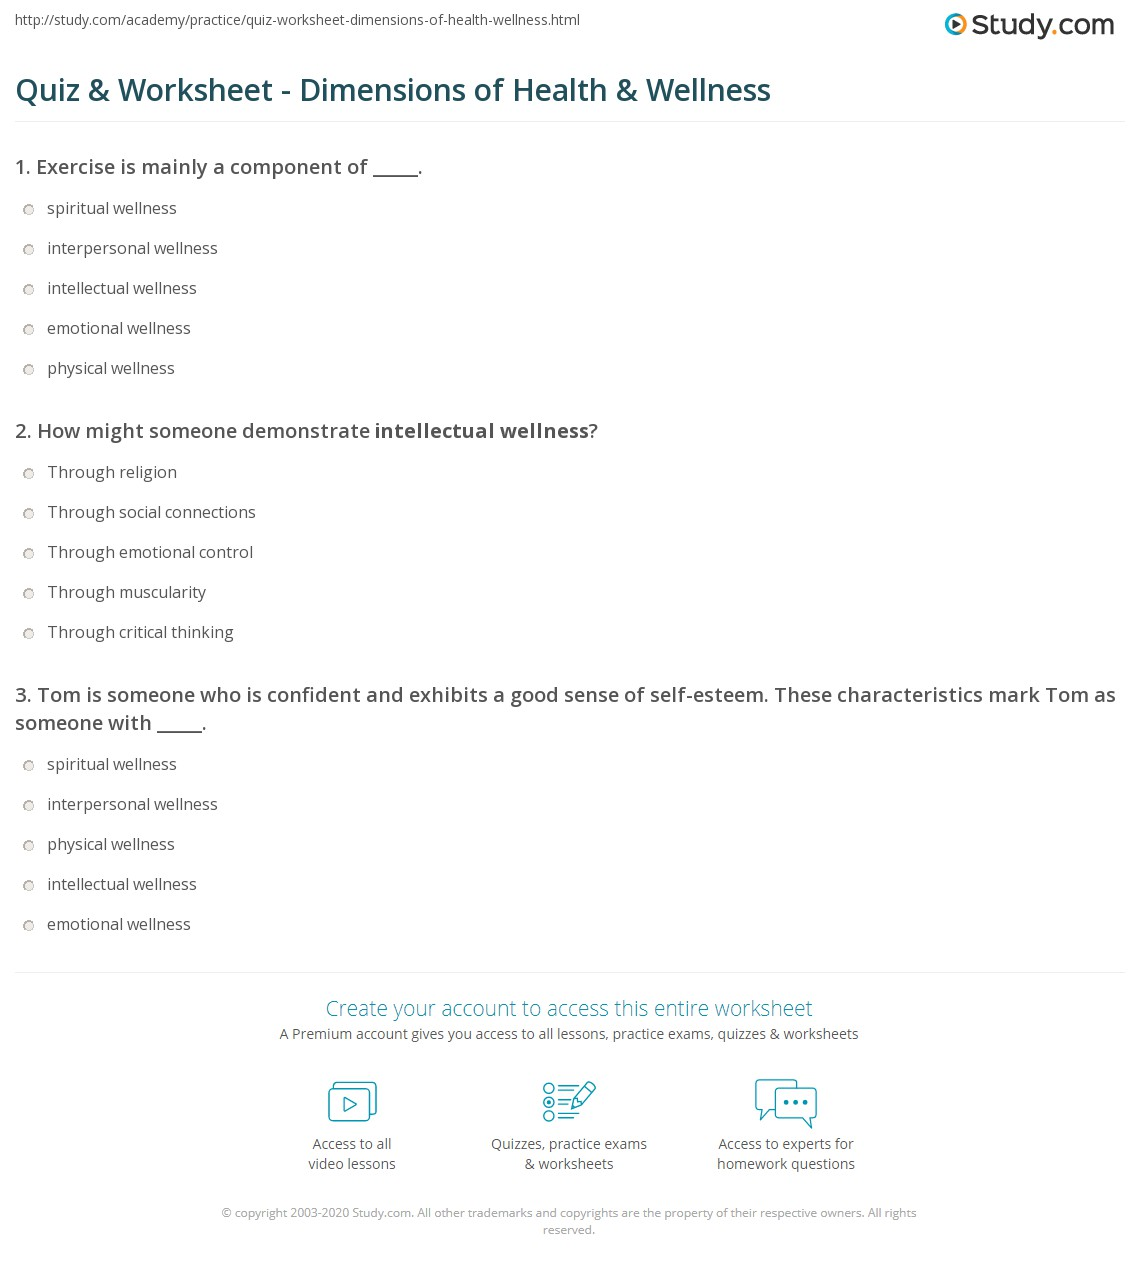 quiz worksheet dimensions of health wellness study com rh study com health and wellness lesson 25 study guide answers health and wellness lesson 46 study guide answers